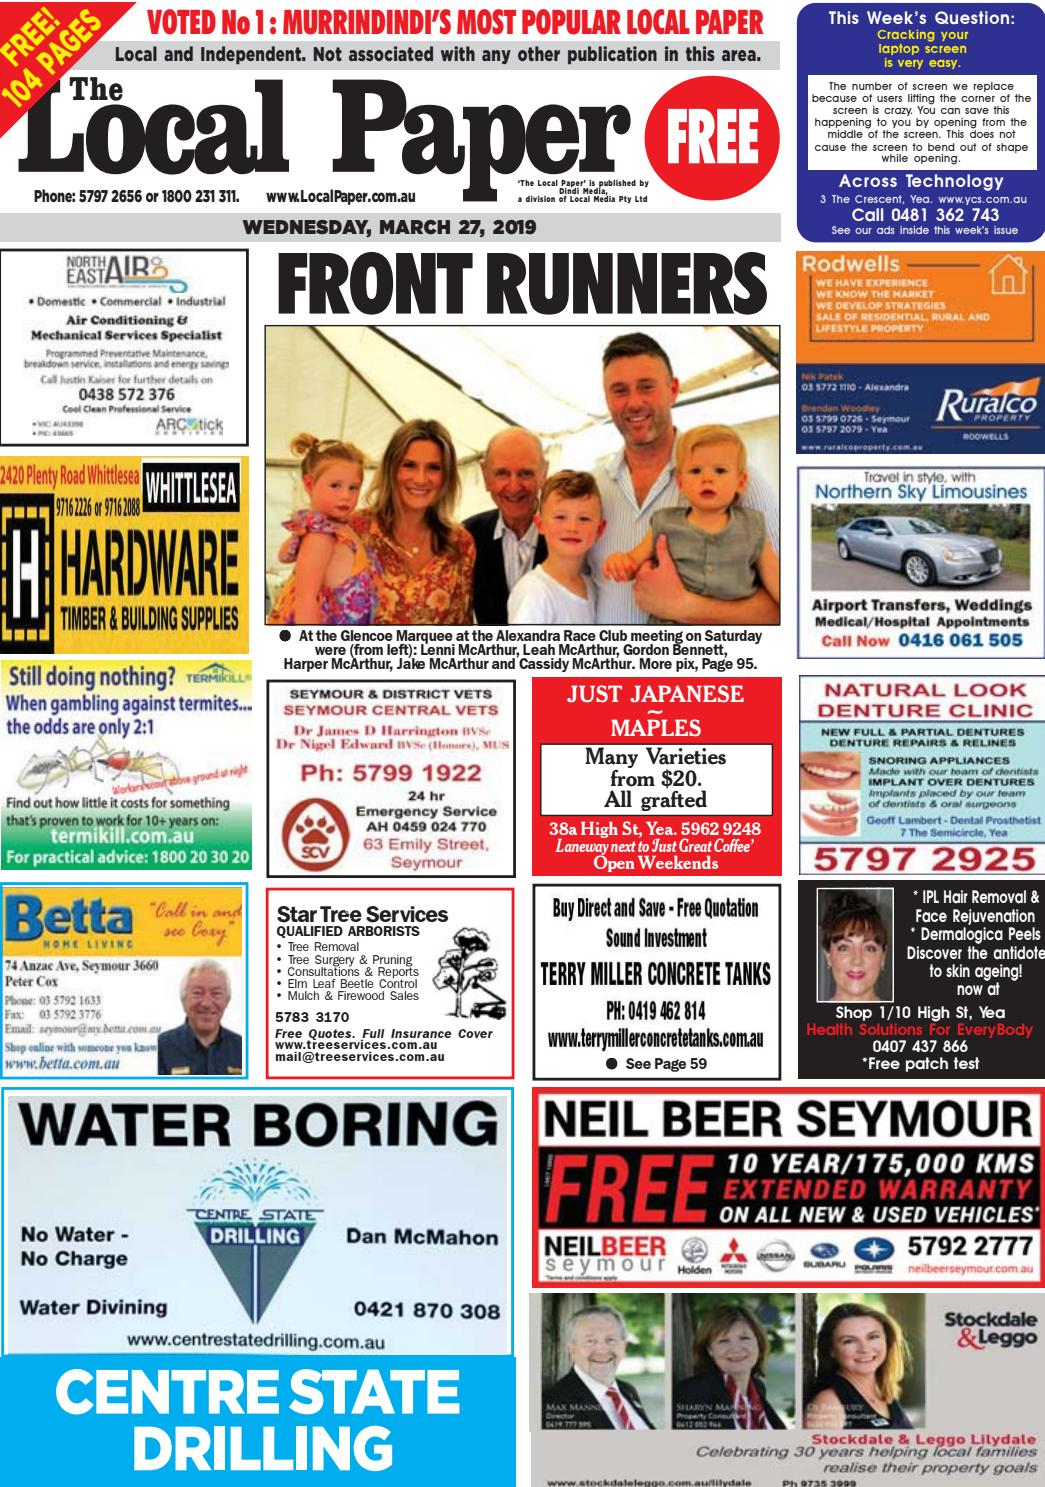 44a53b534ad0b The Local Paper. Wed.